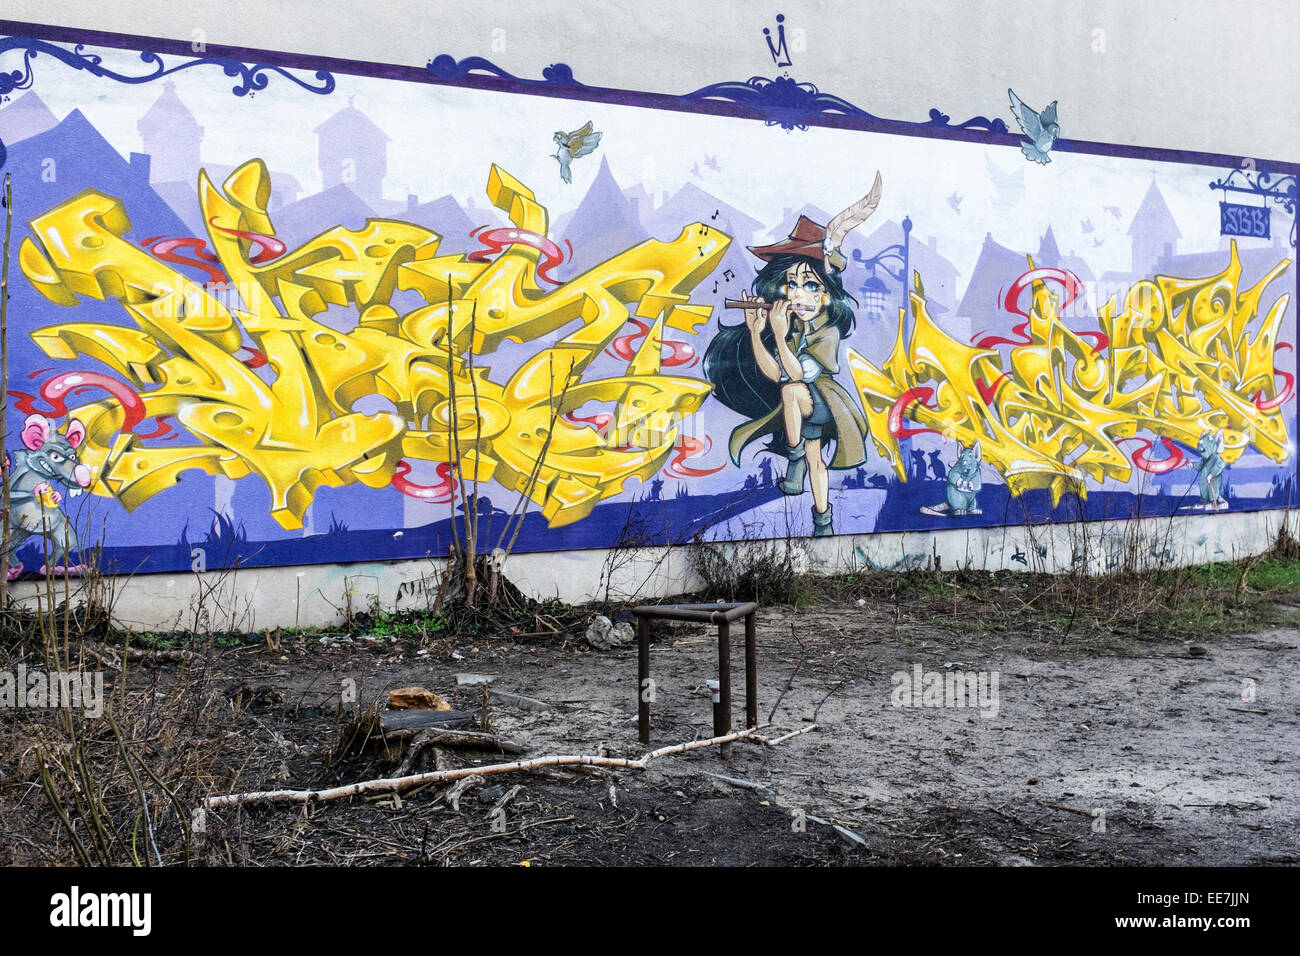 Berlin street art. Pied Piper and rats on an urban wall. Urban art and graffiti in Germany. - Stock Image